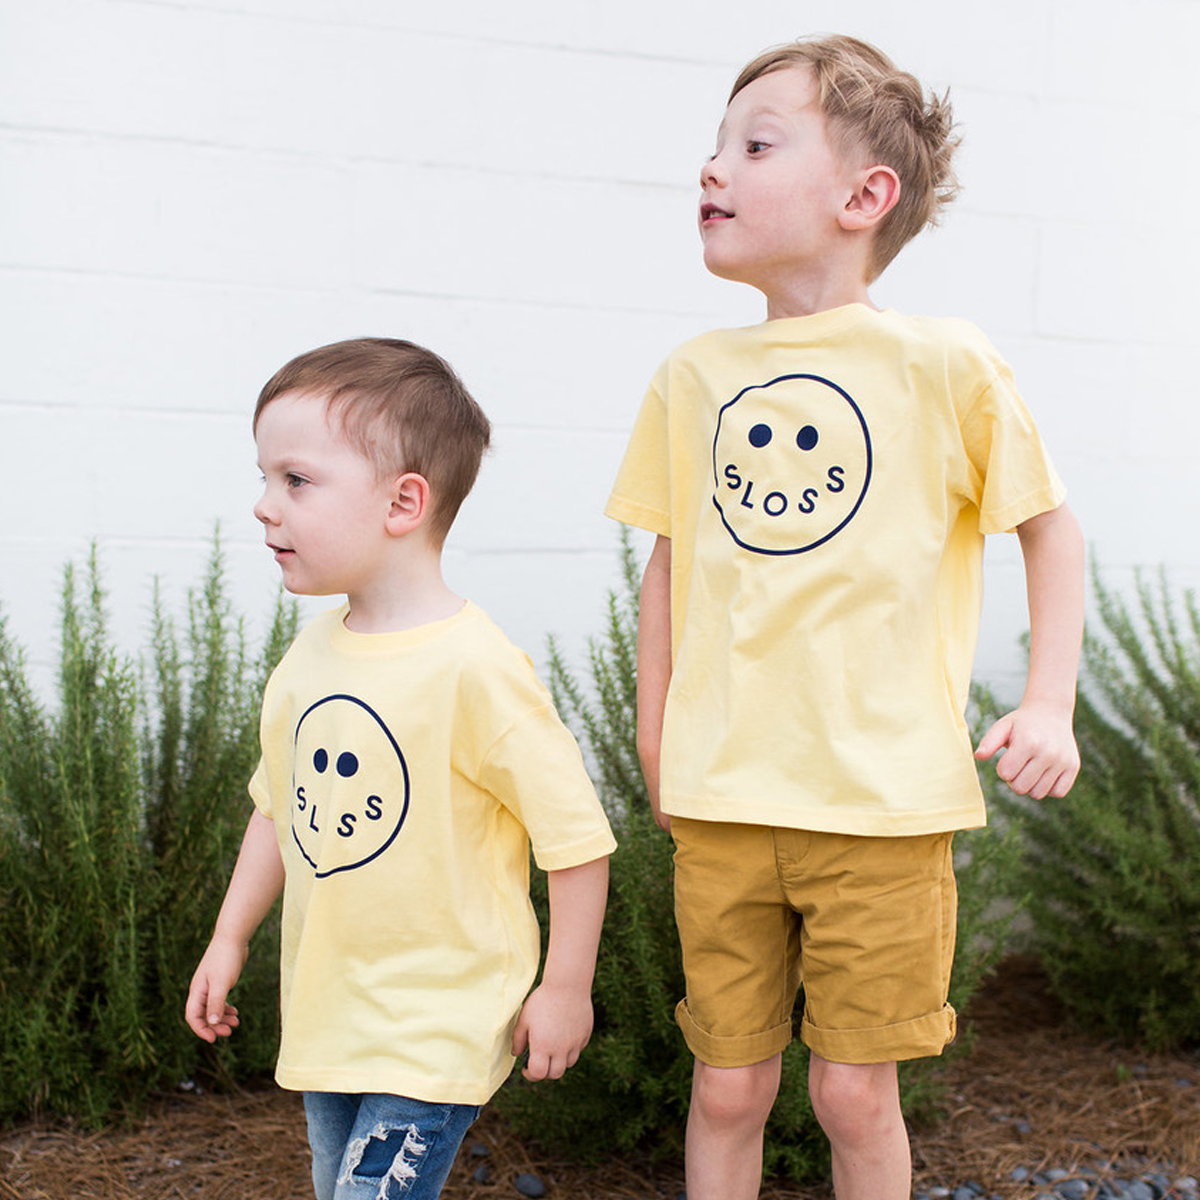 Sloss Music & Arts Festival 2017 Smiley Kids Tee